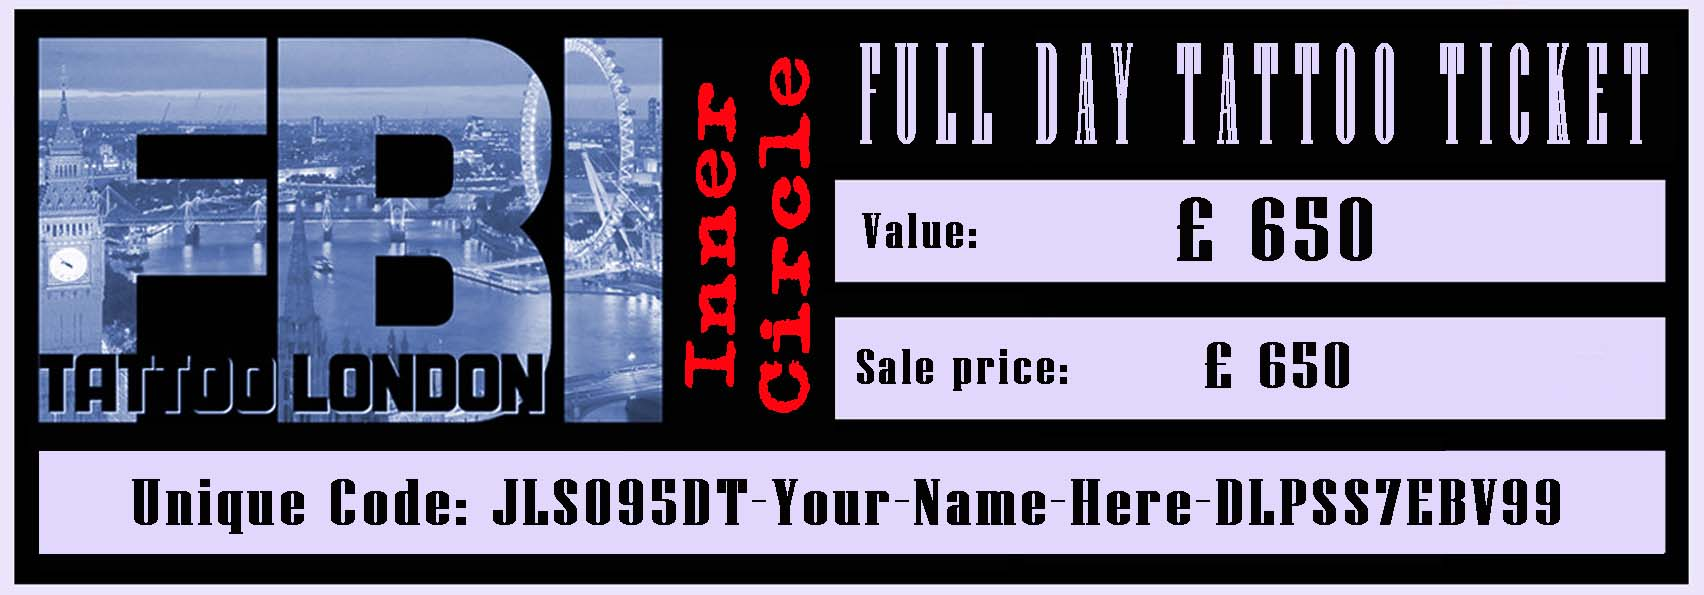 FULL DAY tattoo session ticket